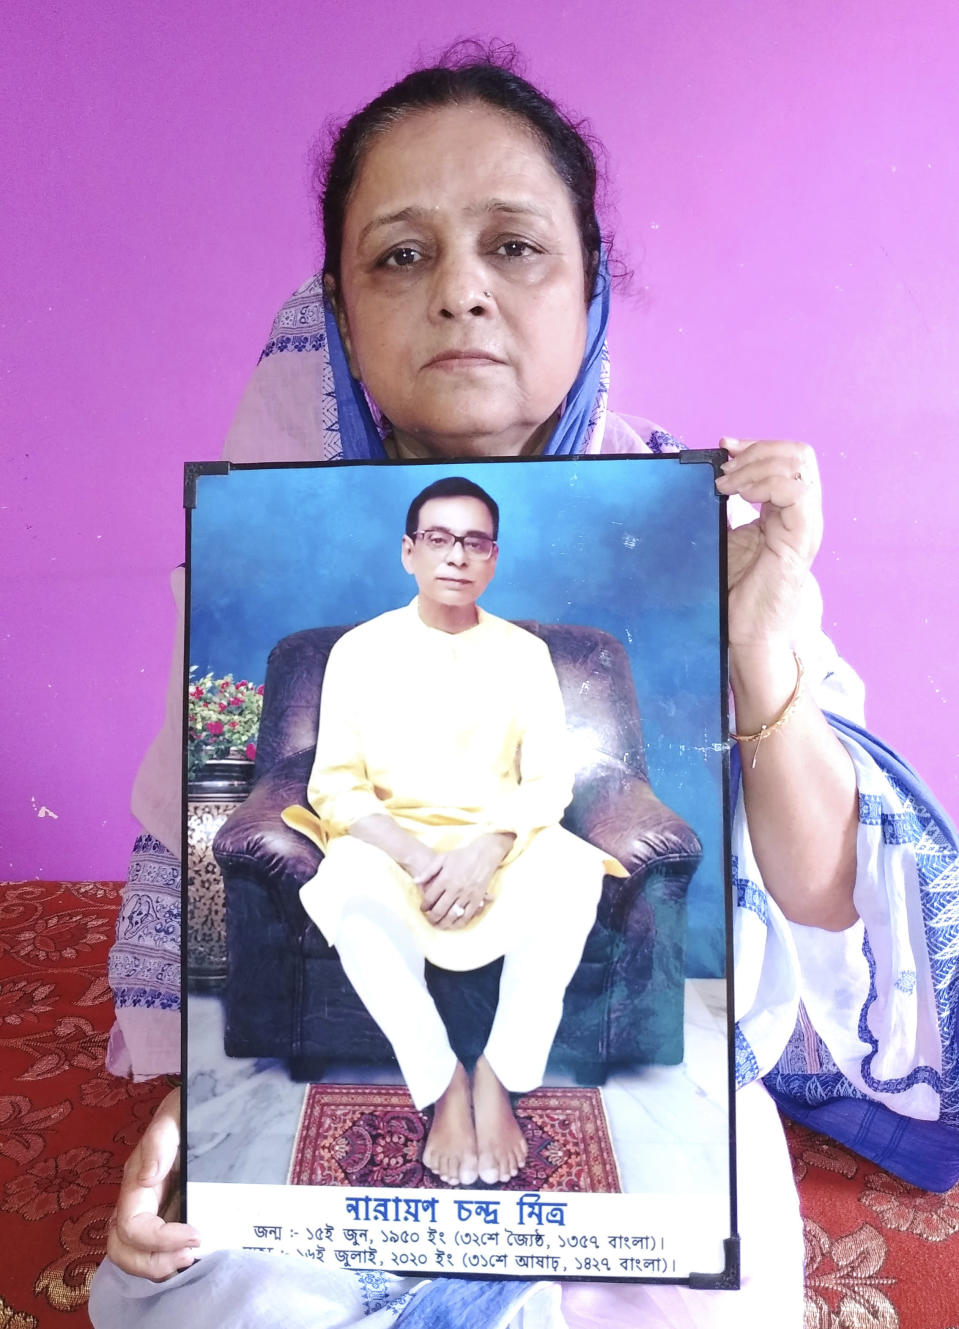 Anindita Mitra, 61, poses with a portrait of her husband late Narayan Mitra, at her house in Silchar, India, Sunday, Sept. 13, 2020. Narayan Mitra, wasn't listed among those killed by the coronavirus that authorities put out daily because the test results confirming COVID-19 arrived after his death. In India, people who die with other preexisting conditions are often not counted as COVID-19 deaths, while only those who test positive for the virus before dying are included in the official tally in many states. (AP Photo/Joy Roy)